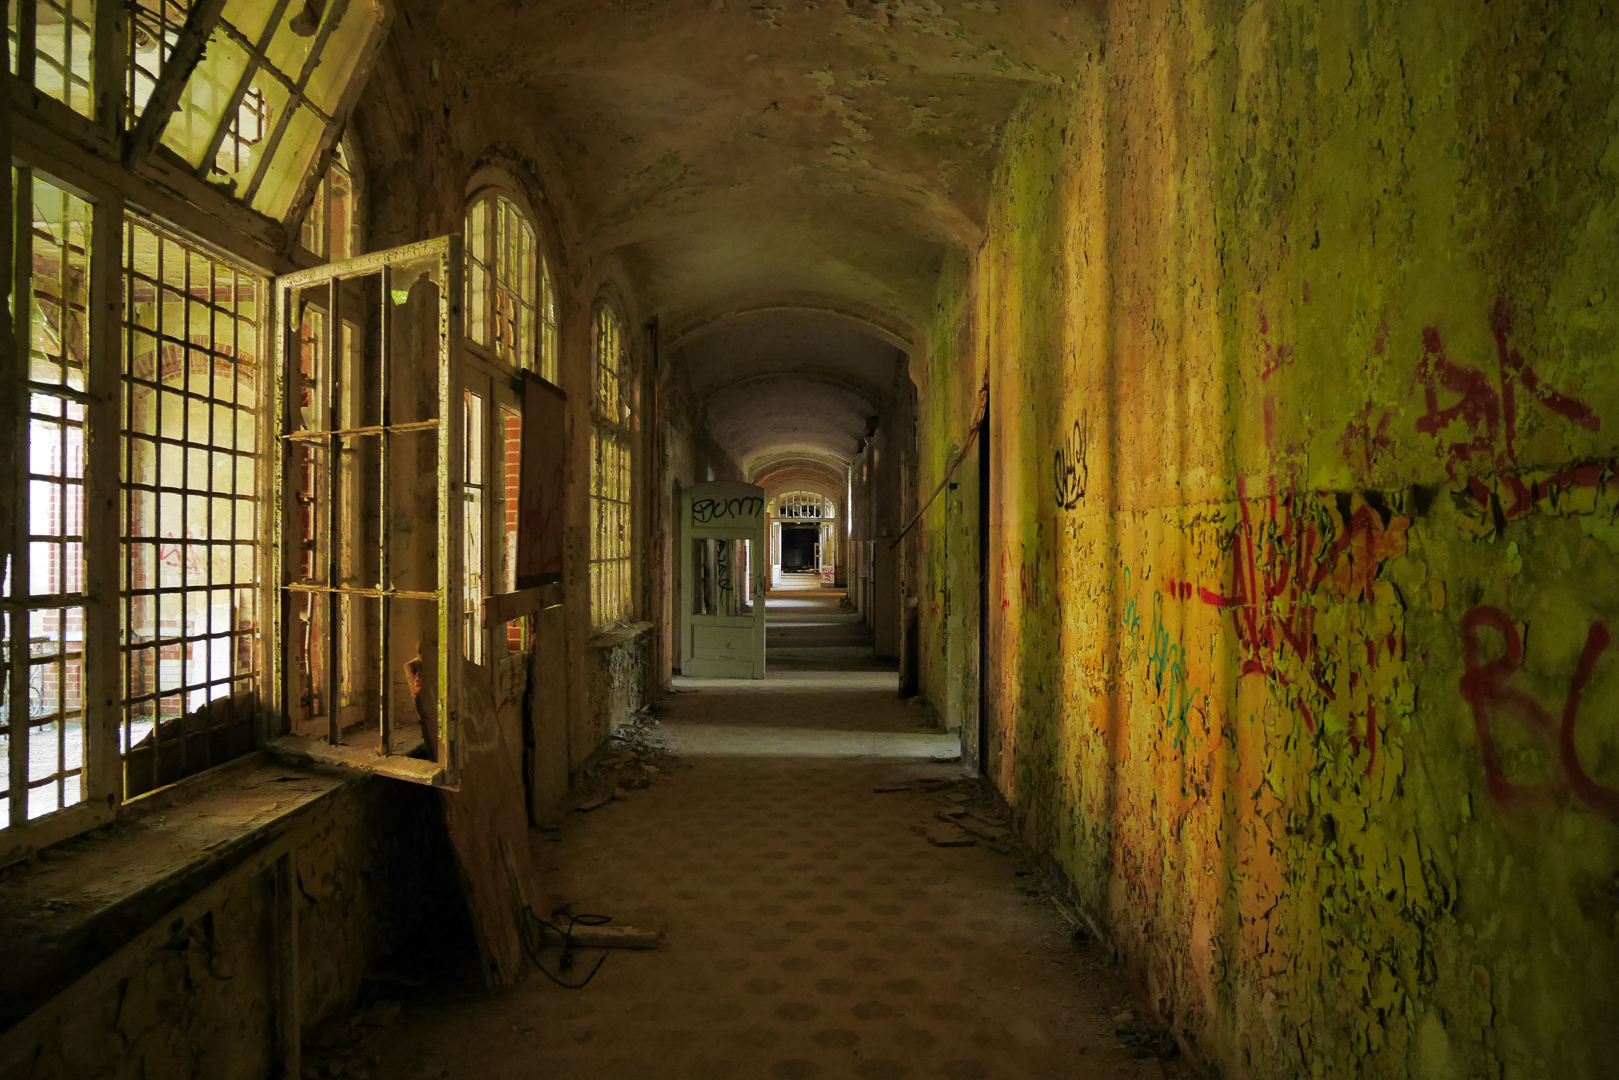 GERMANY, Beelitz-Heilstätten – Abandoned former sanatorium turn